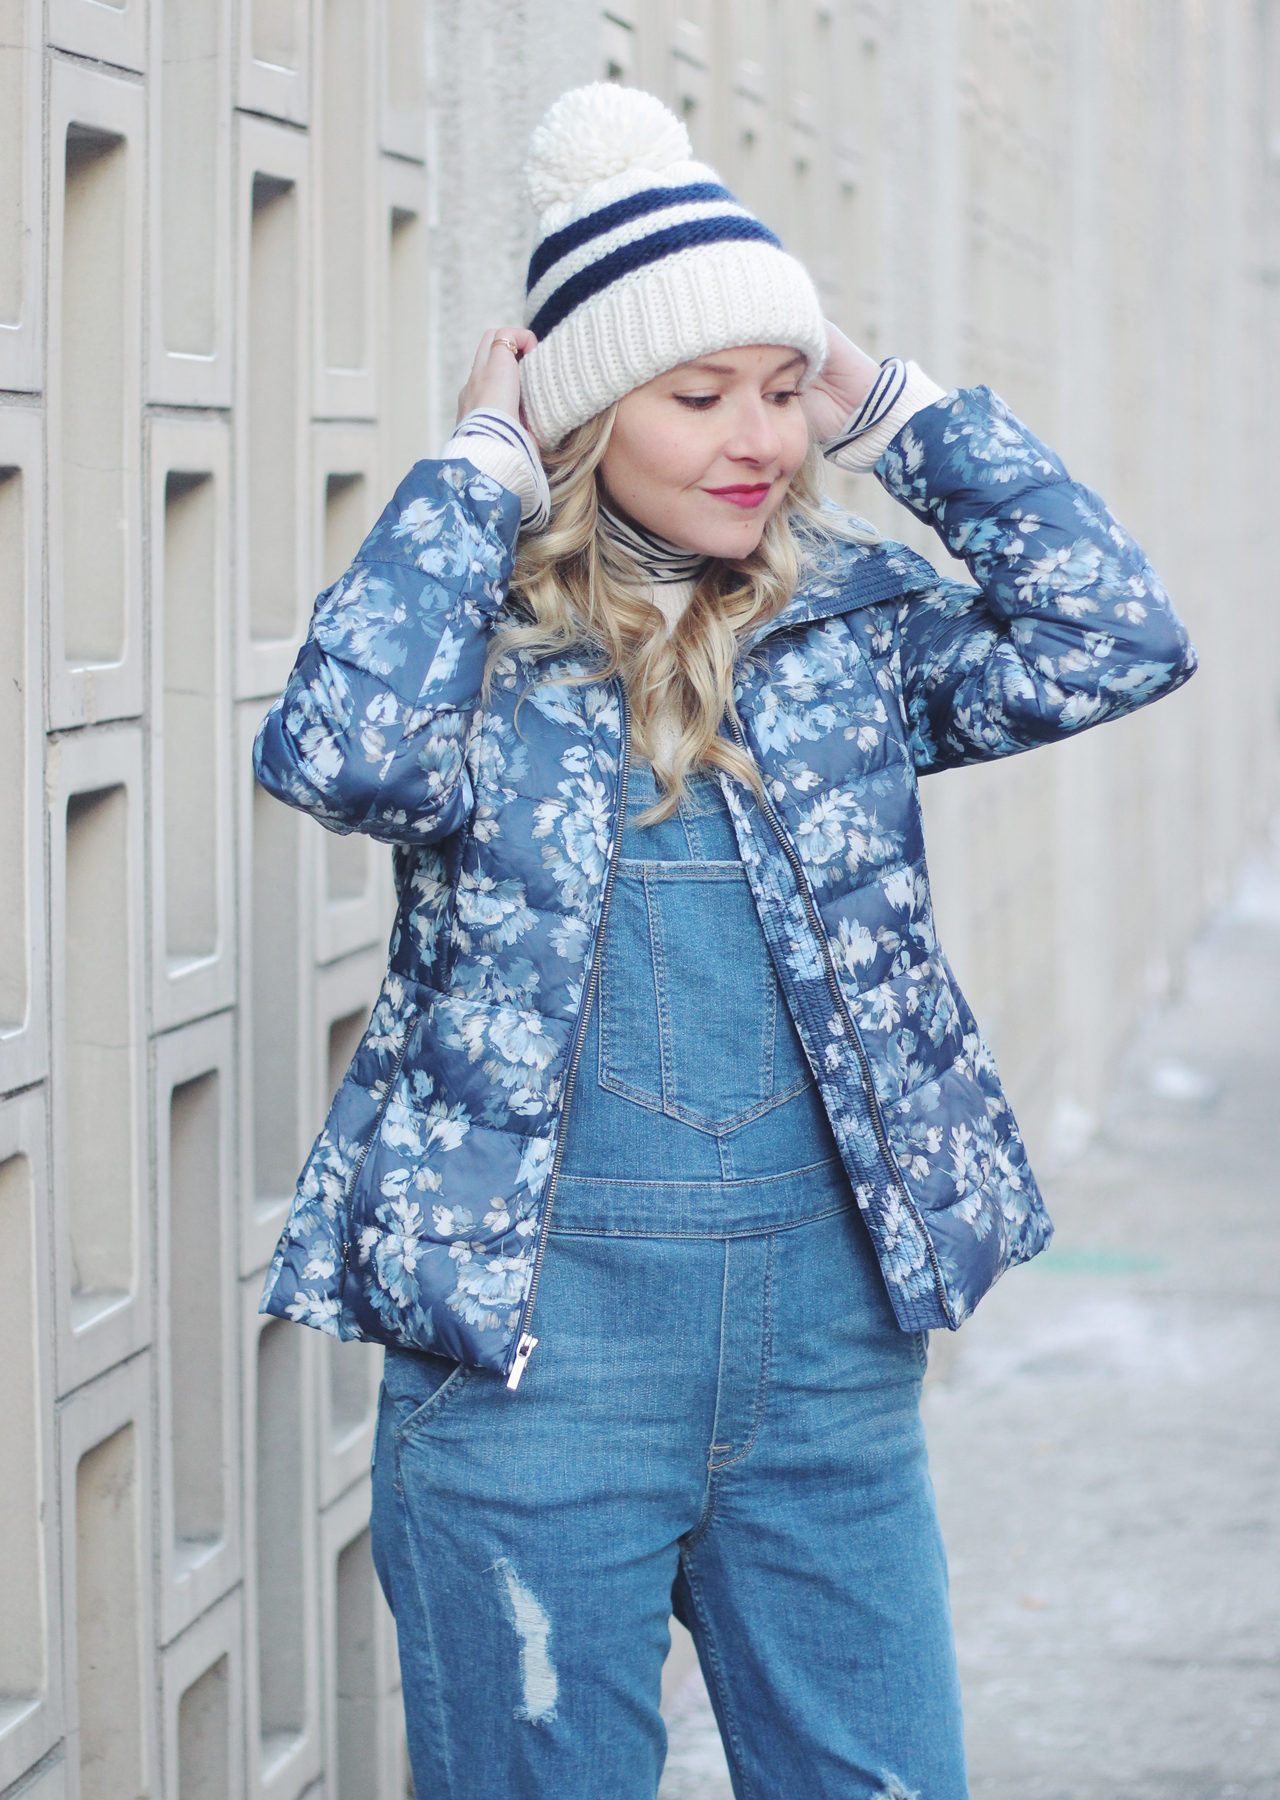 The Steele Maiden: Casual Winter Layers - Floral Puffer Jacket